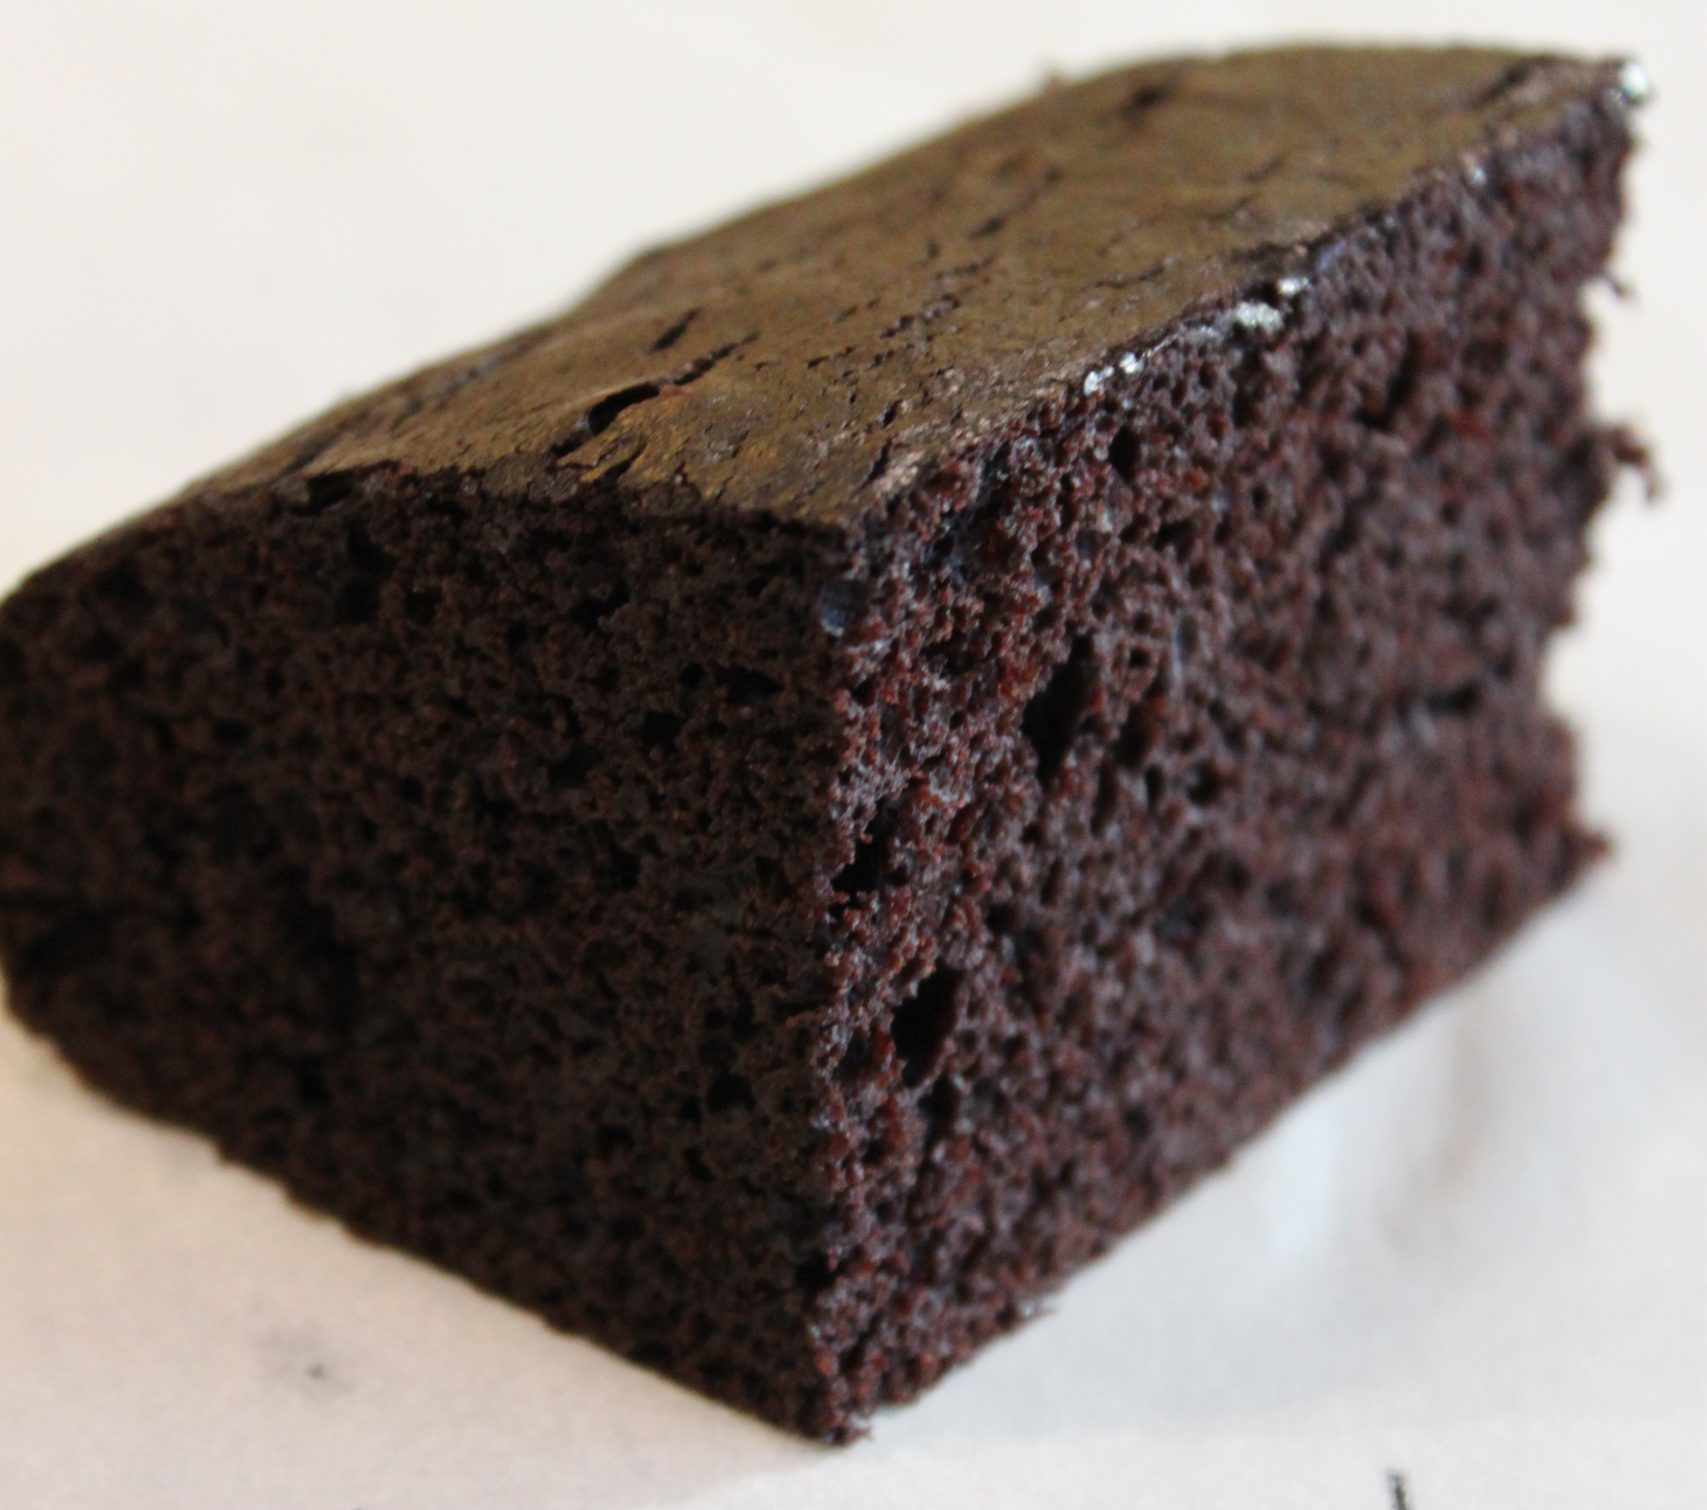 A square slice of Alton Browns chocolate devils food cake.